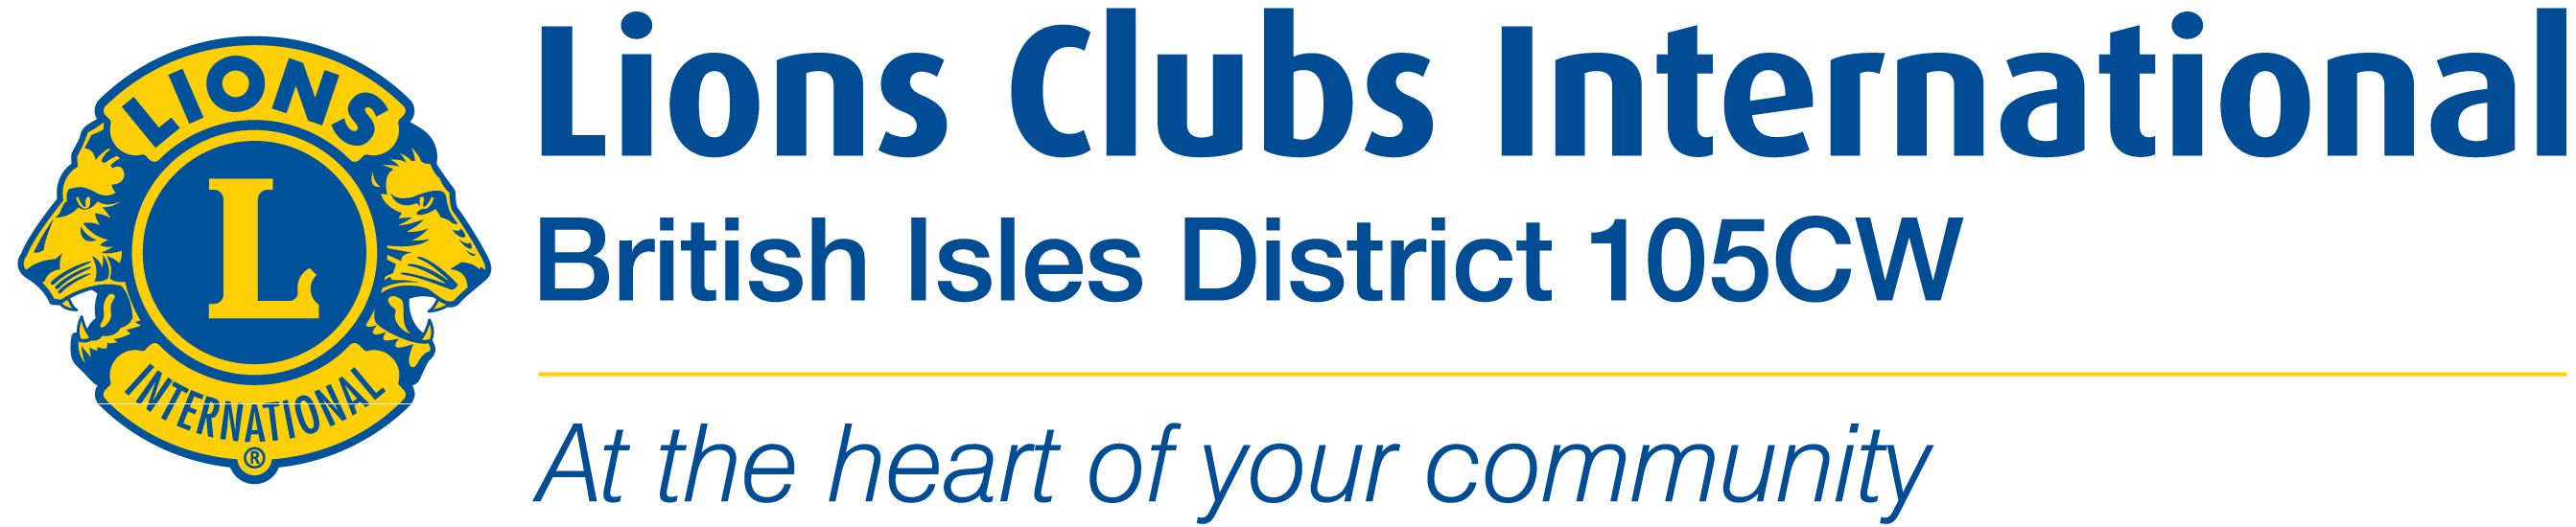 District Officers – Lions Clubs International MD105 District CW